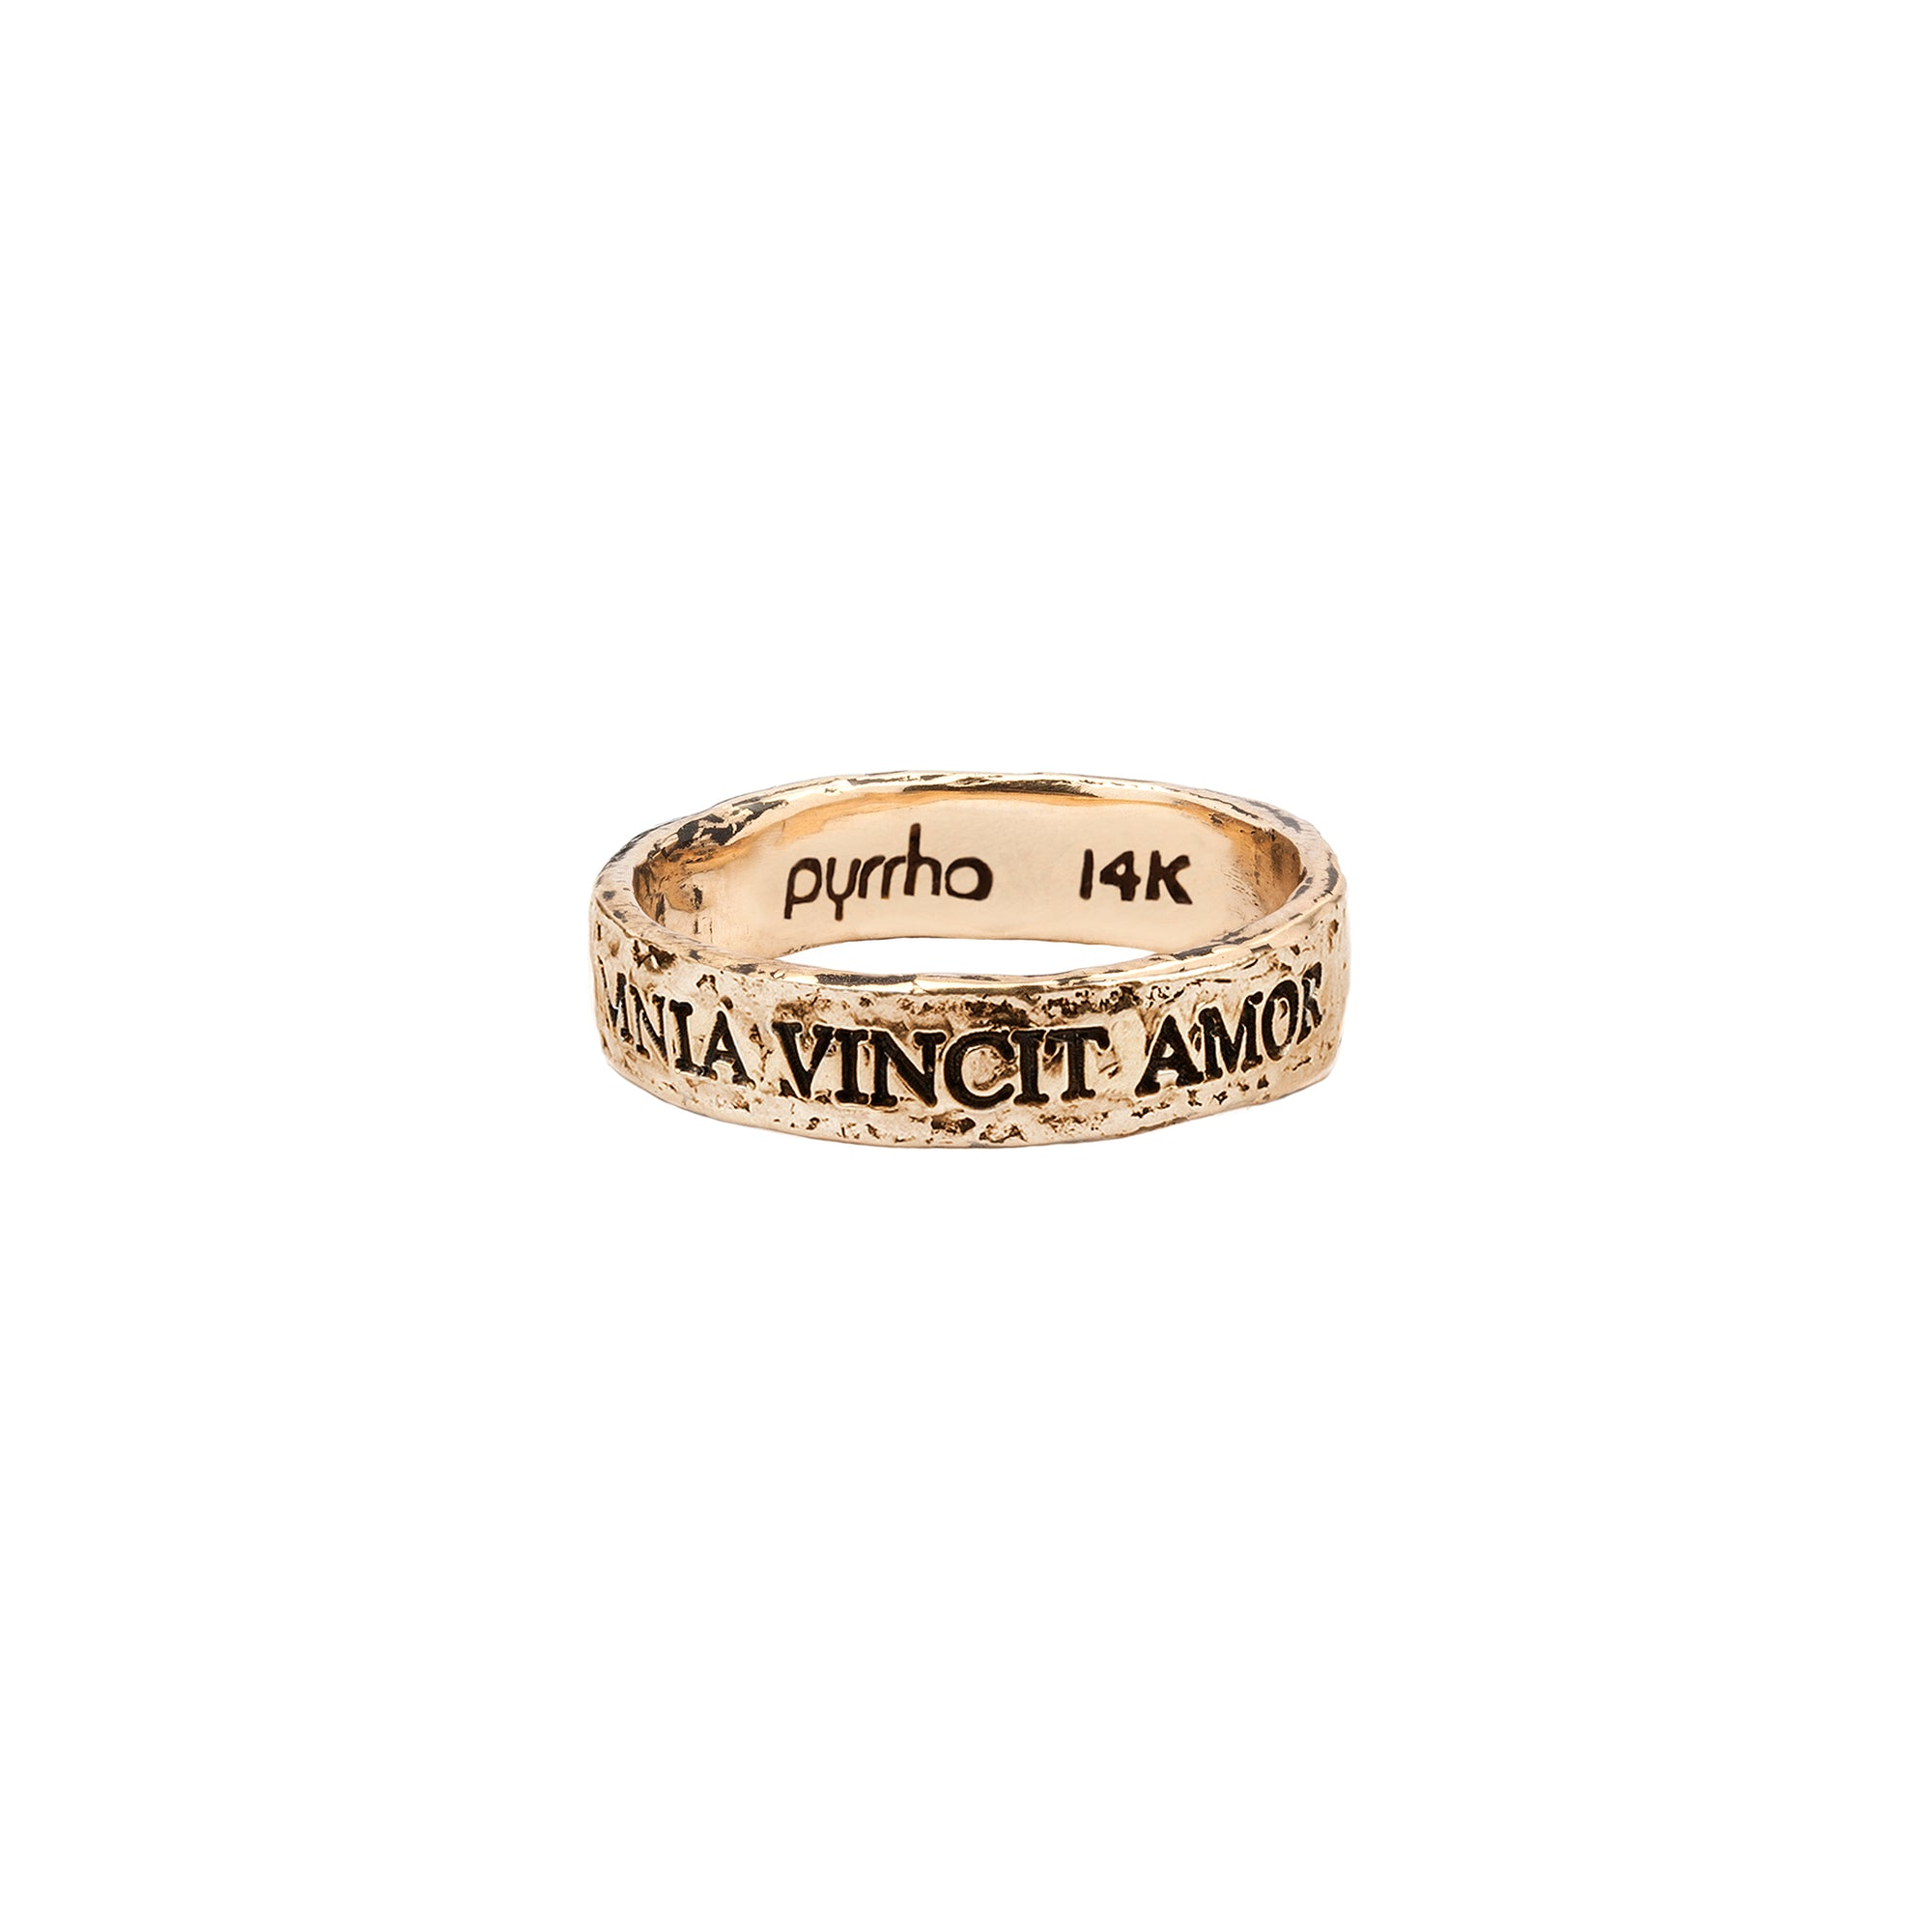 Pyrrha 14k omnia vincit amor latin motto band ring